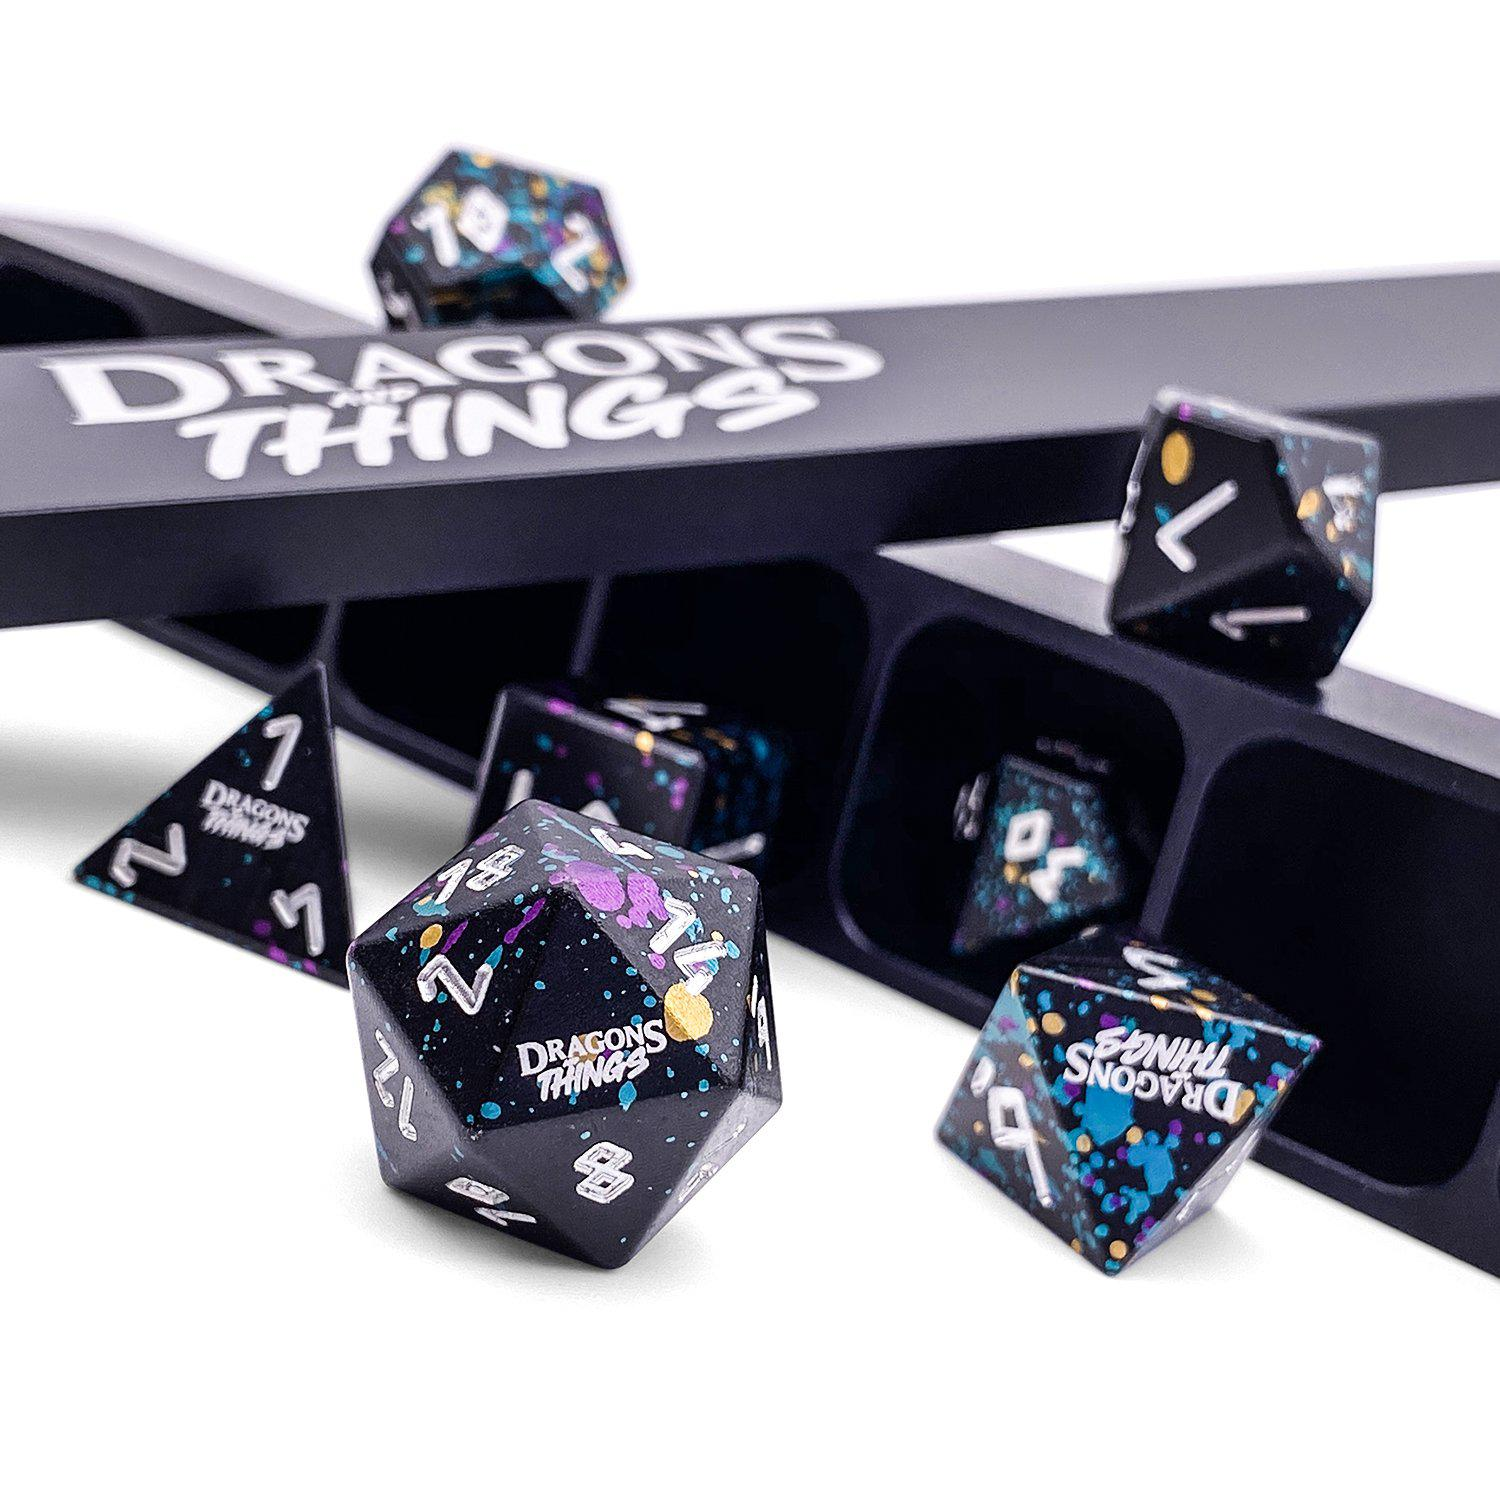 Dragons and Things Court Jester - Precision CNC Aluminum Dice Set with Dice Vault